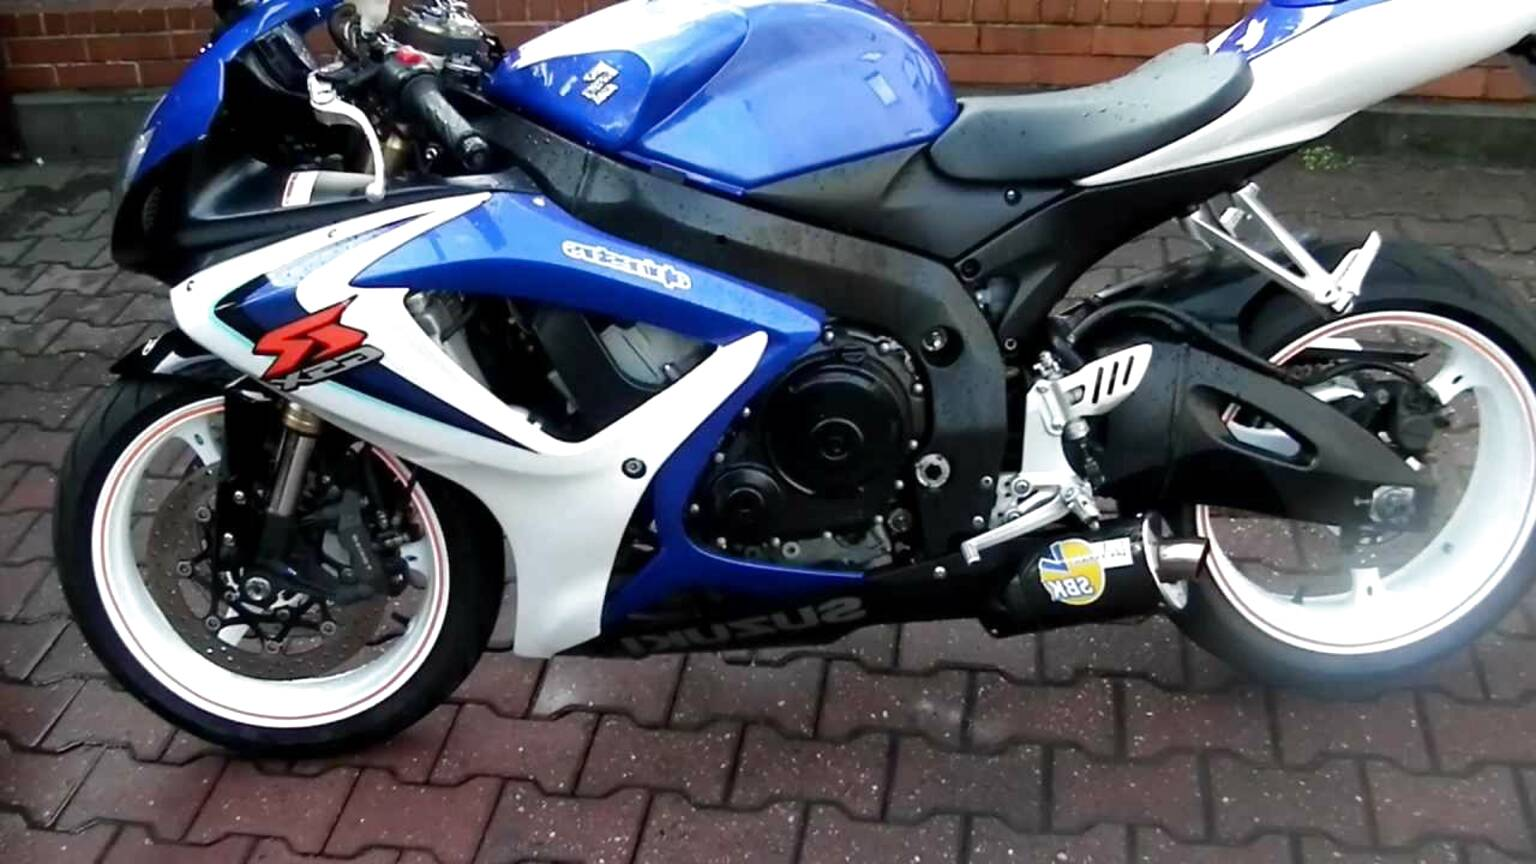 gsxr600 k6 for sale